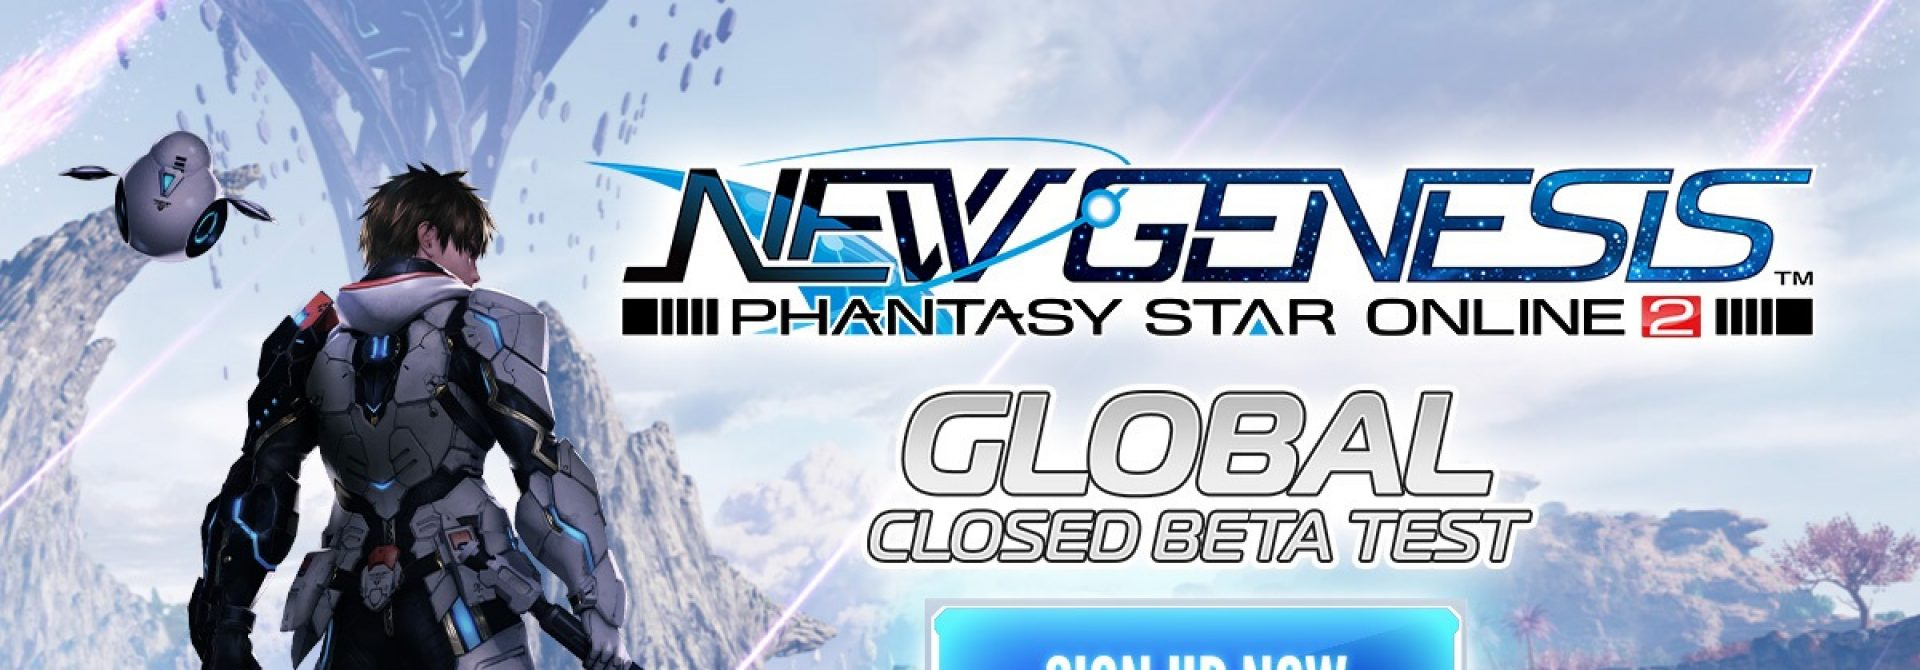 Phantasy Star Online 2: New Genesis Starts Beta Test May 14